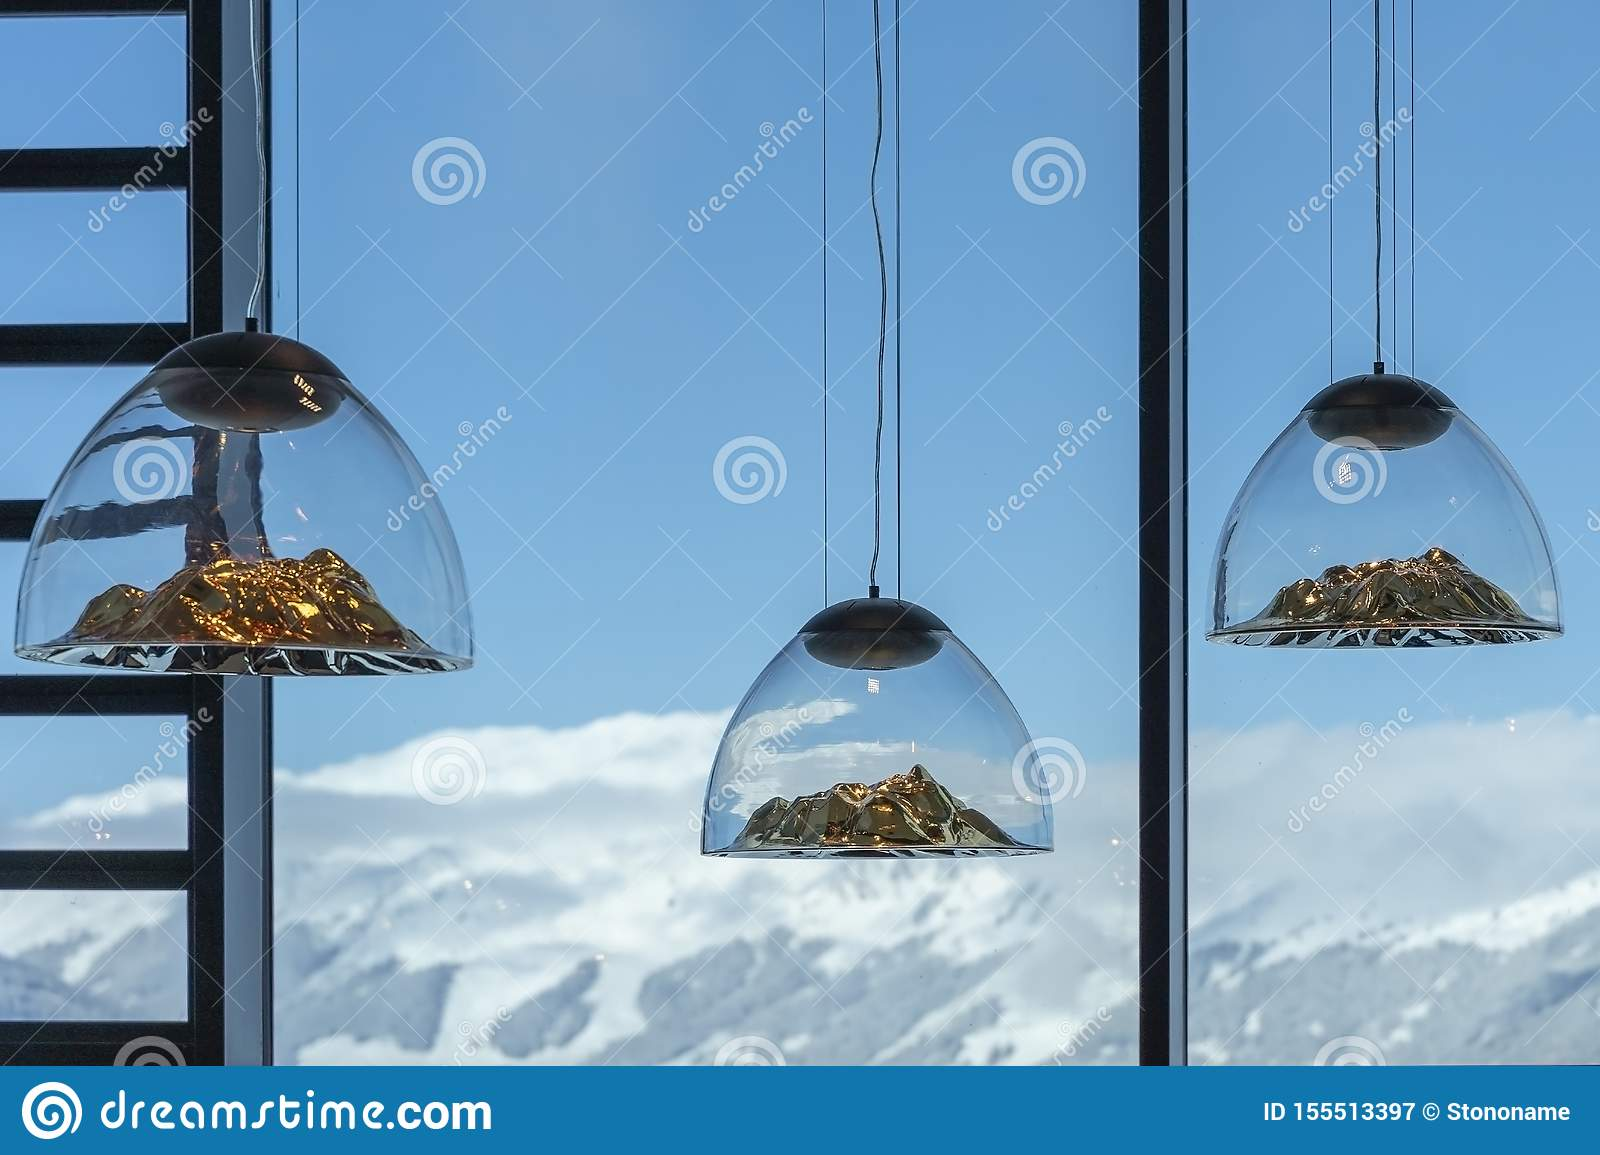 The lamps in shape like mountains in ski resort cafe in Austrian Alps